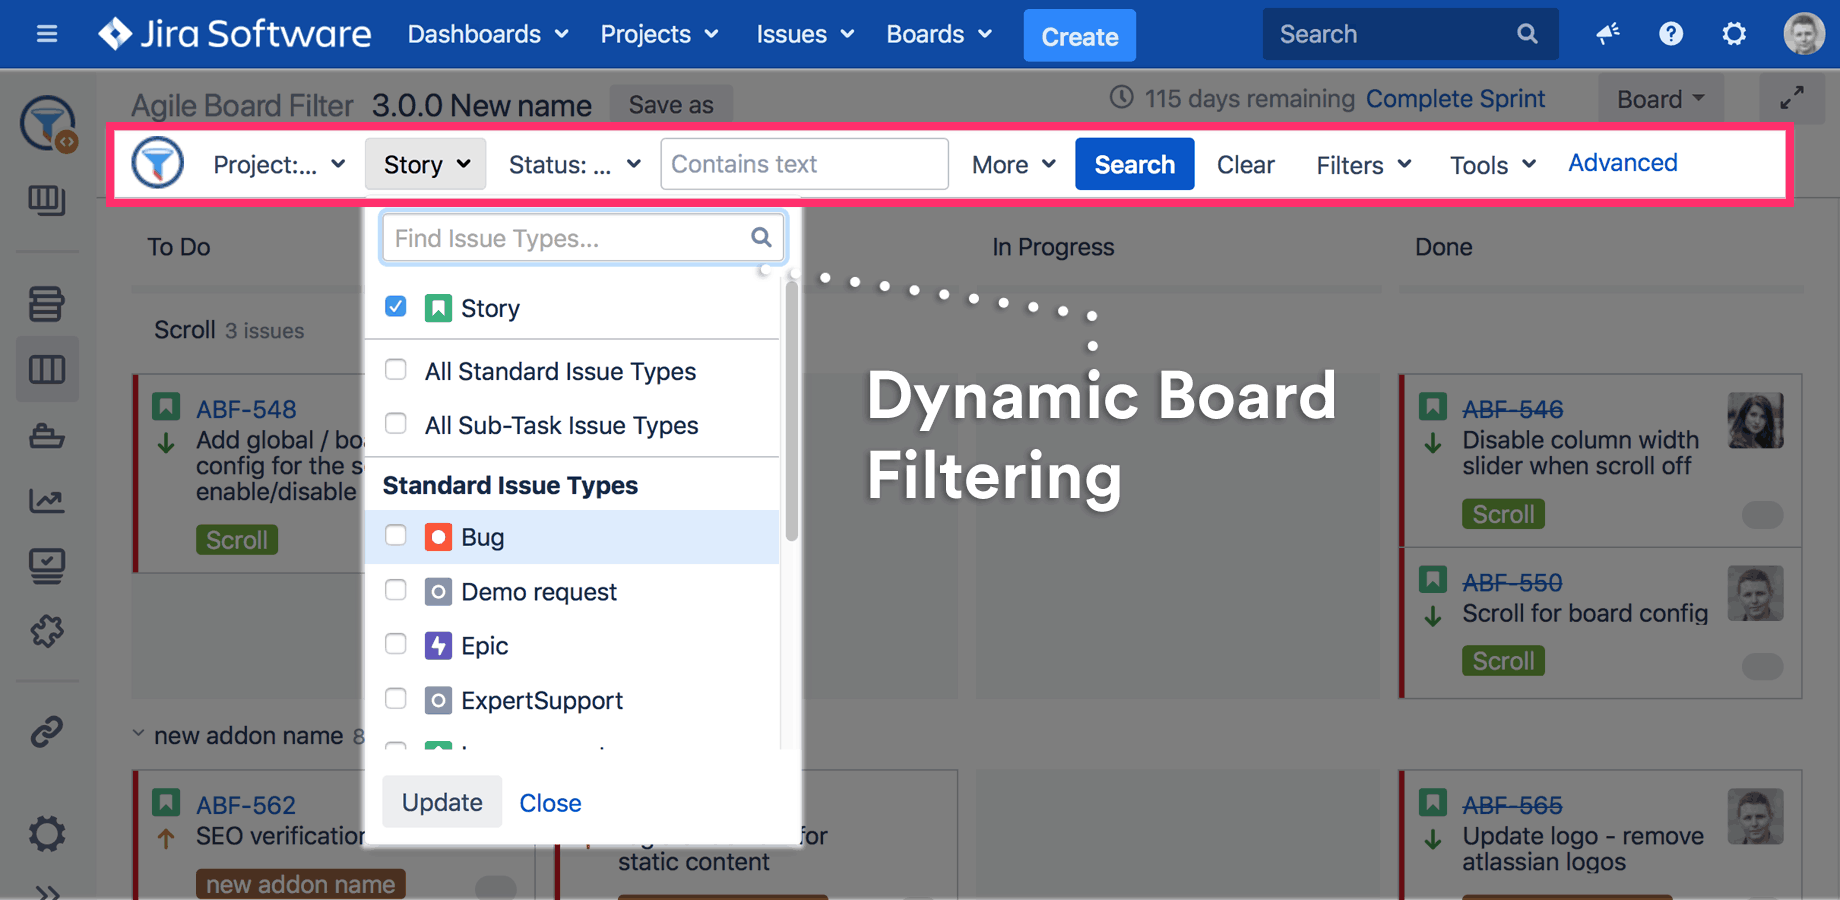 Agile Tools & Filters for Jira